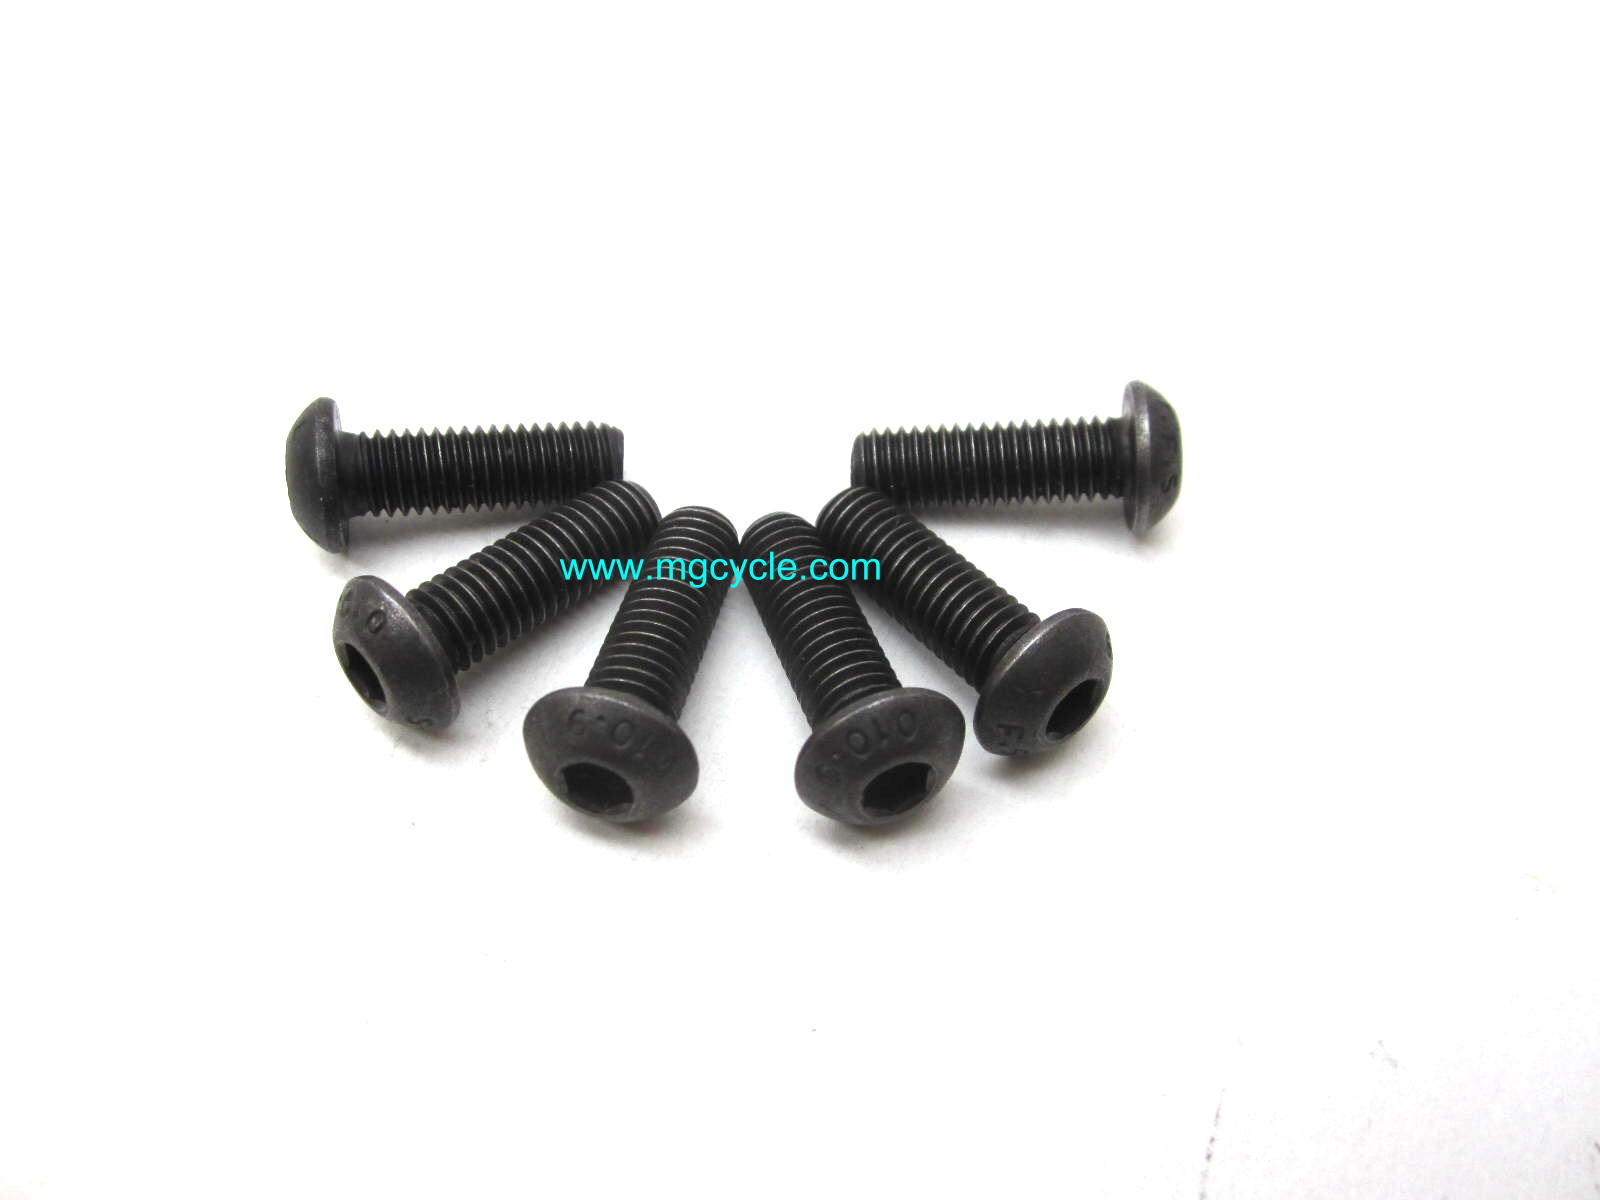 Brake disk fastener kit, one disk, 6 pieces button head 10.9